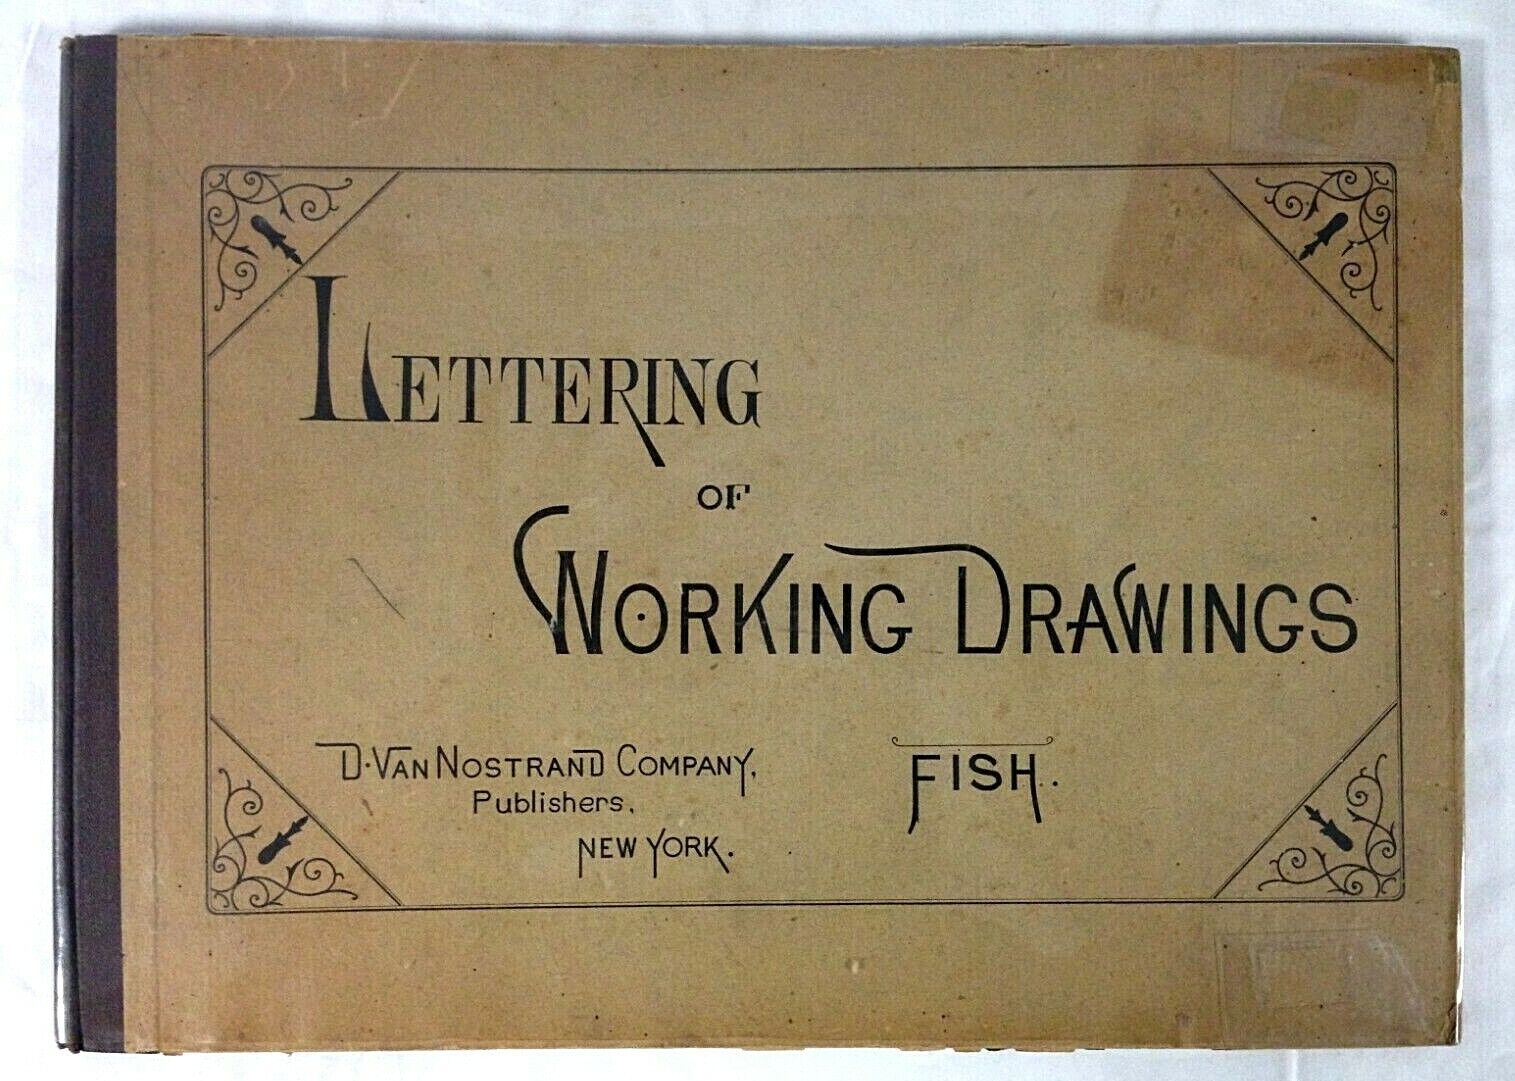 1bf4eb415a9e Lettering Of Working Drawings by JCL Fish (Hardback, 1900)